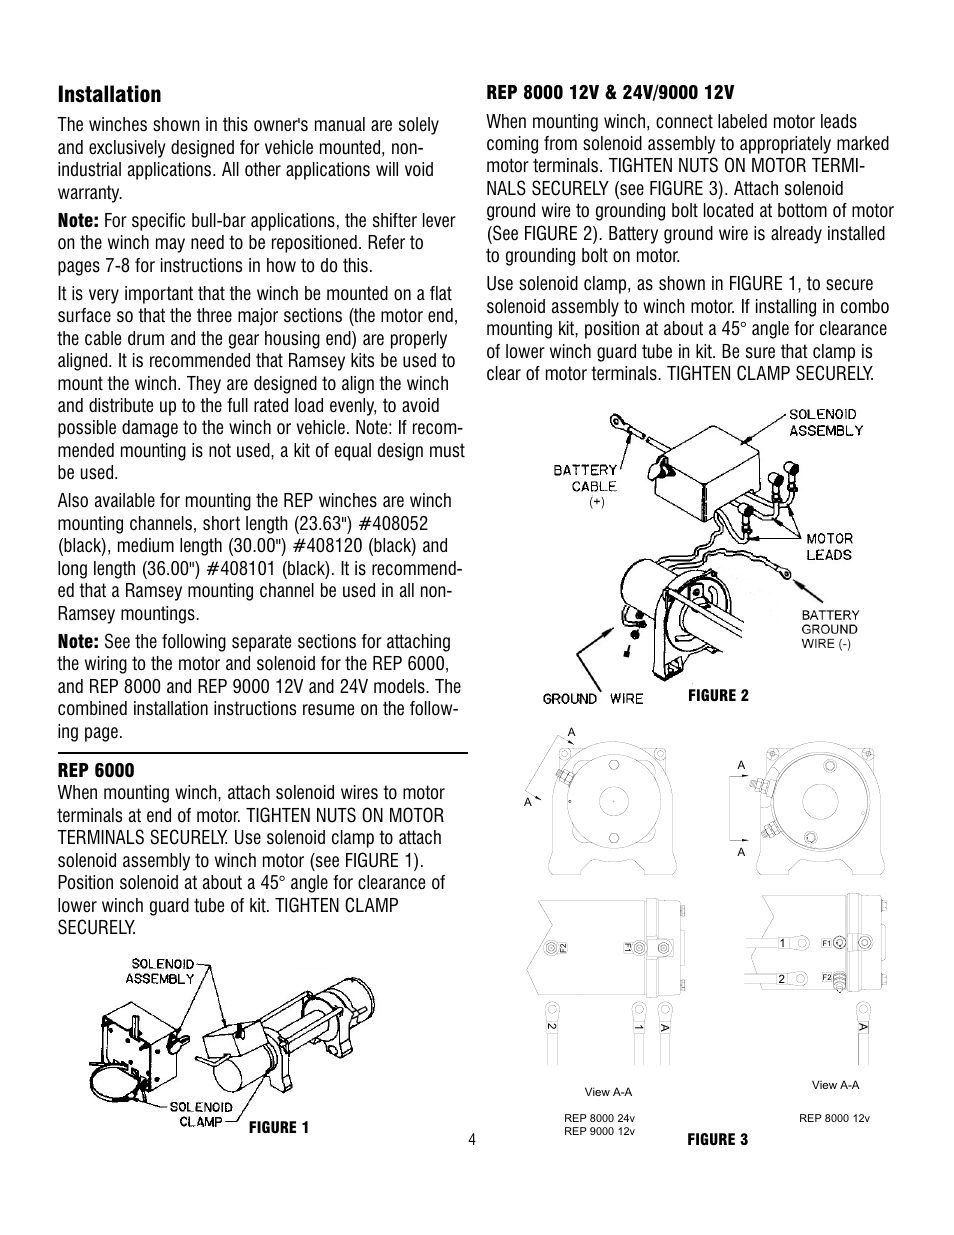 ramsey winch rep 6000_8000_9000 current page4 installation ramsey winch rep 6000 8000 9000 current user manual ramsey rep 8000 wiring diagram at aneh.co